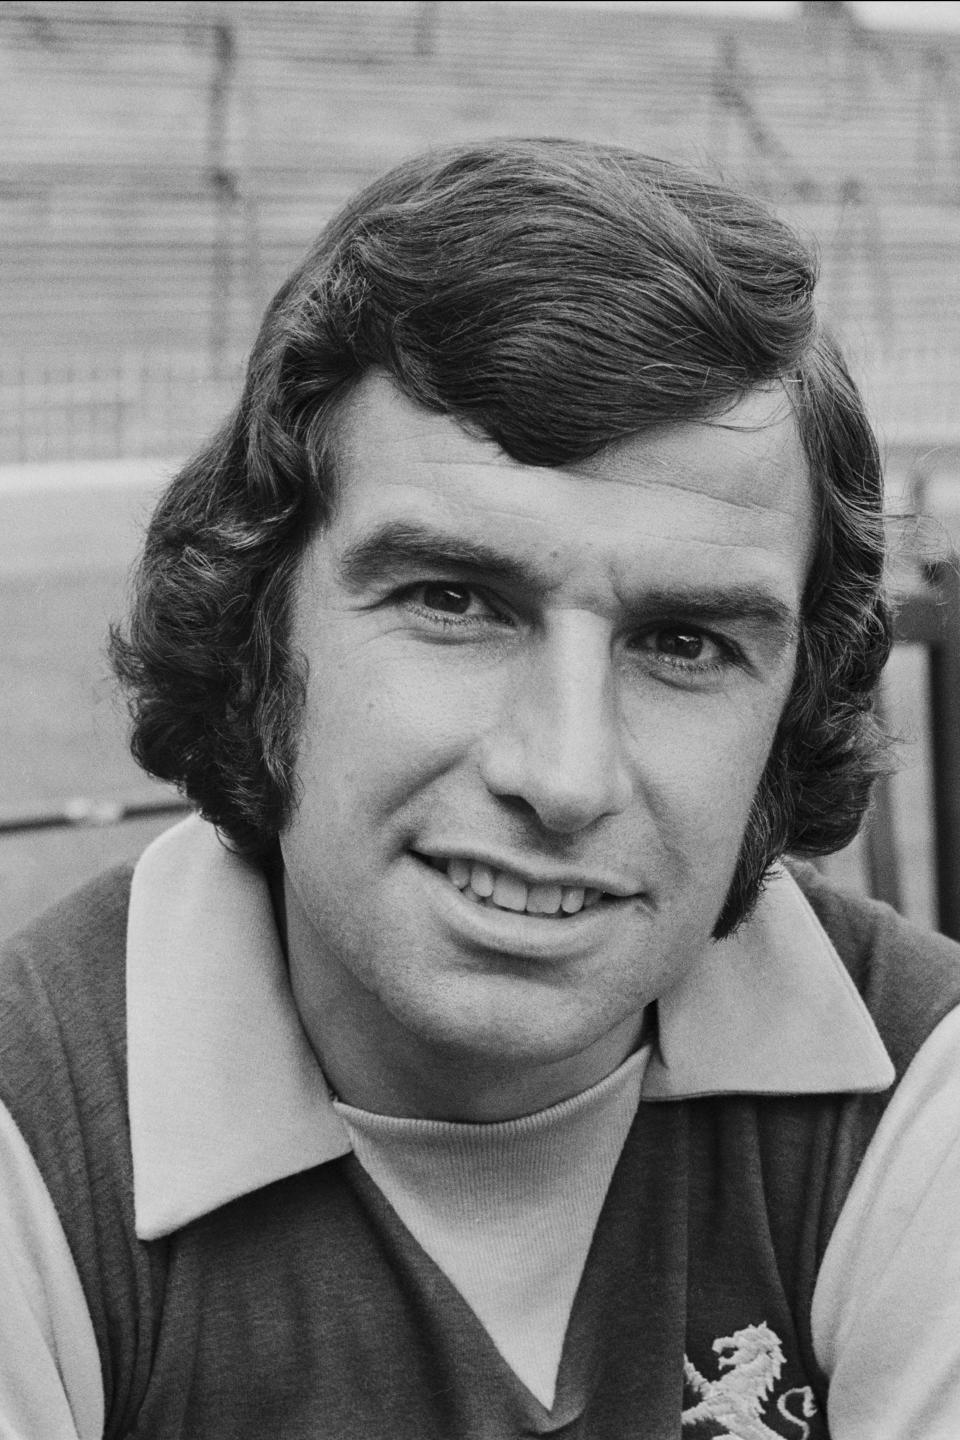 Footballer Brian Tiler (1943 - 1990) of Aston Villa F.C., UK, 23rd August 1971. (Photo by Daily Express/Getty Images)